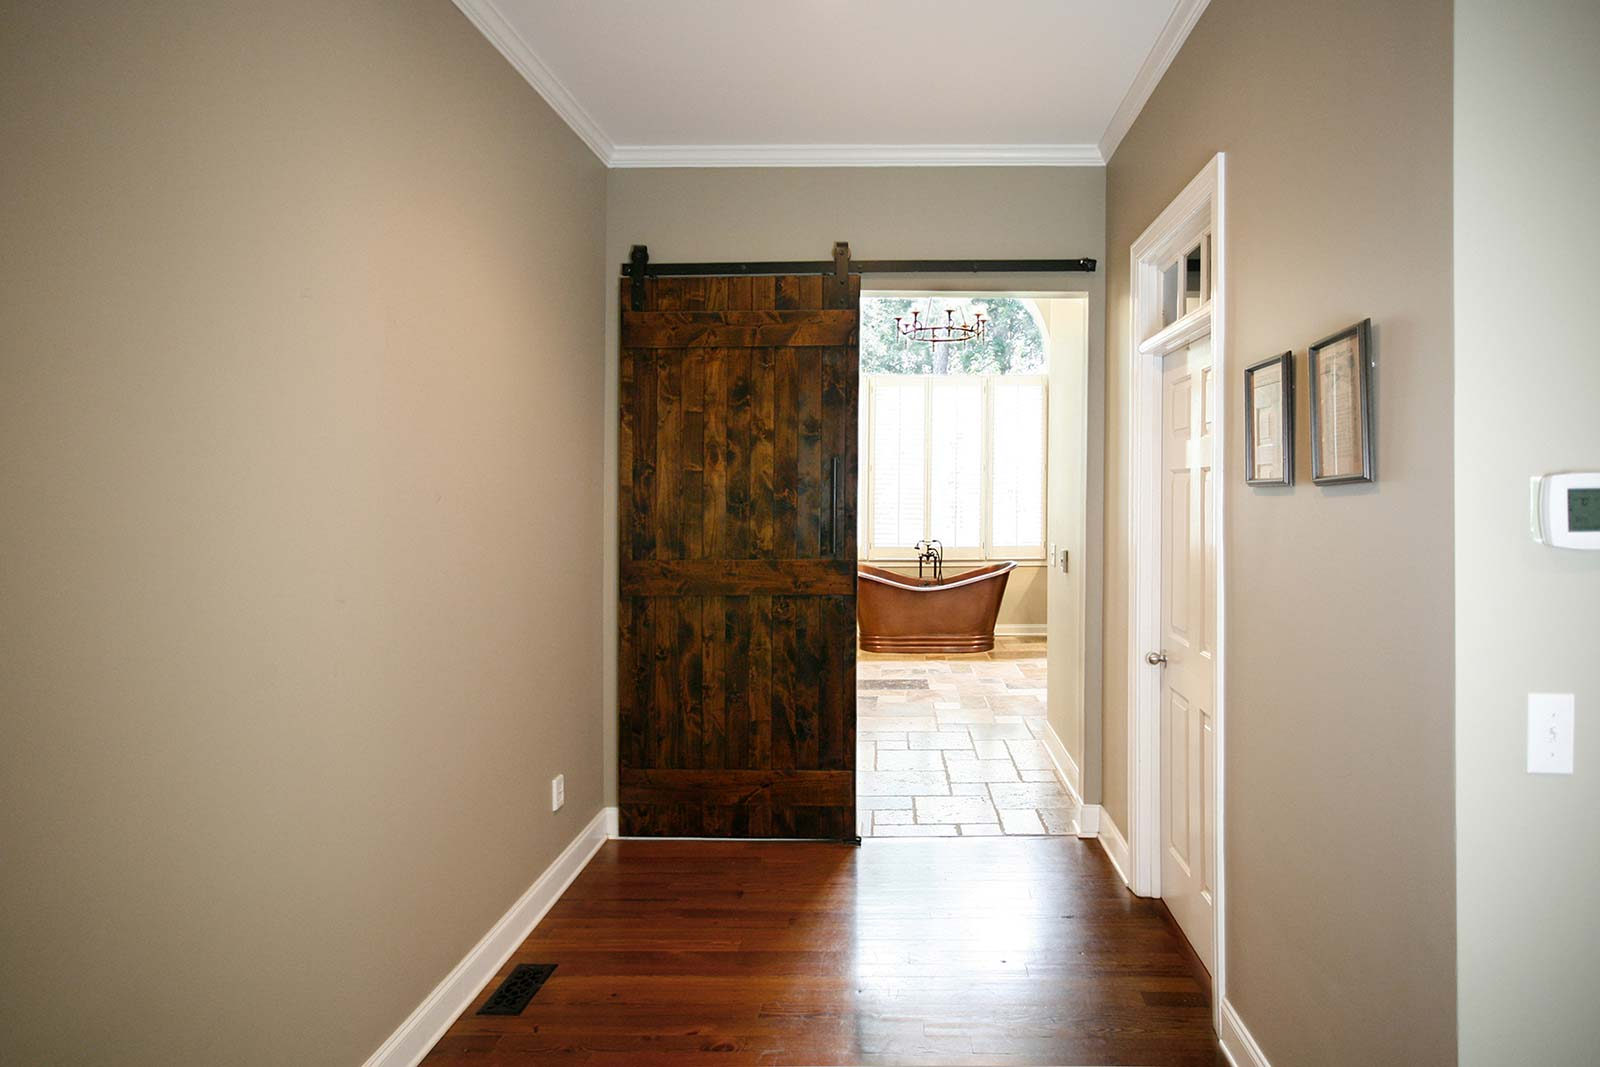 Barndoor style doors leading to bathroom